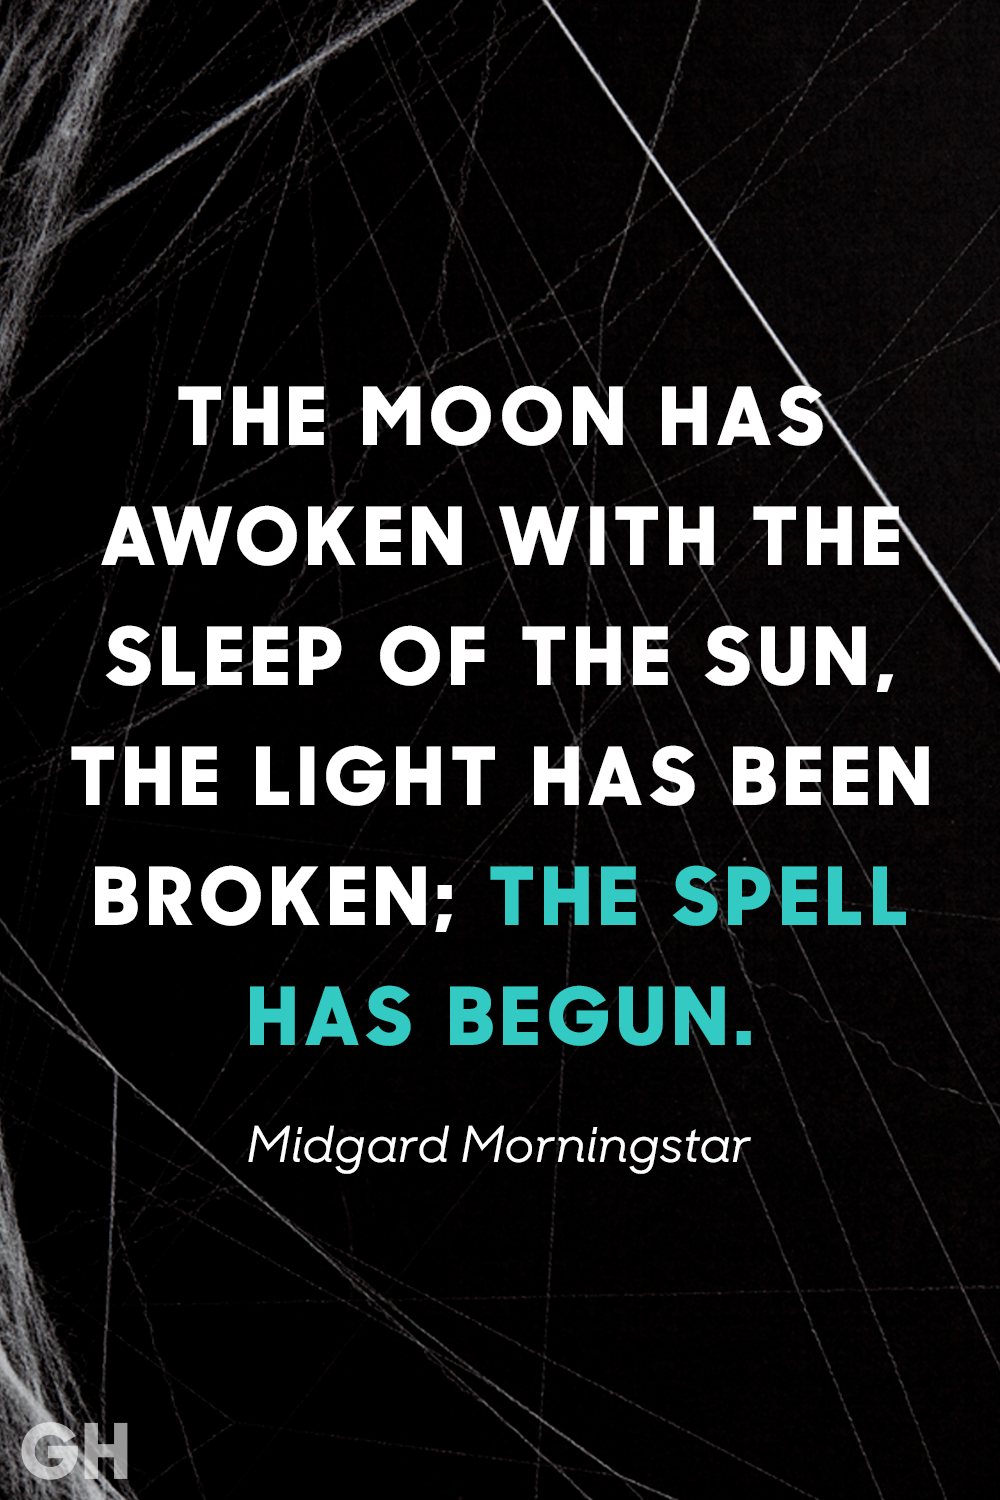 midgard morningstar halloween quotes